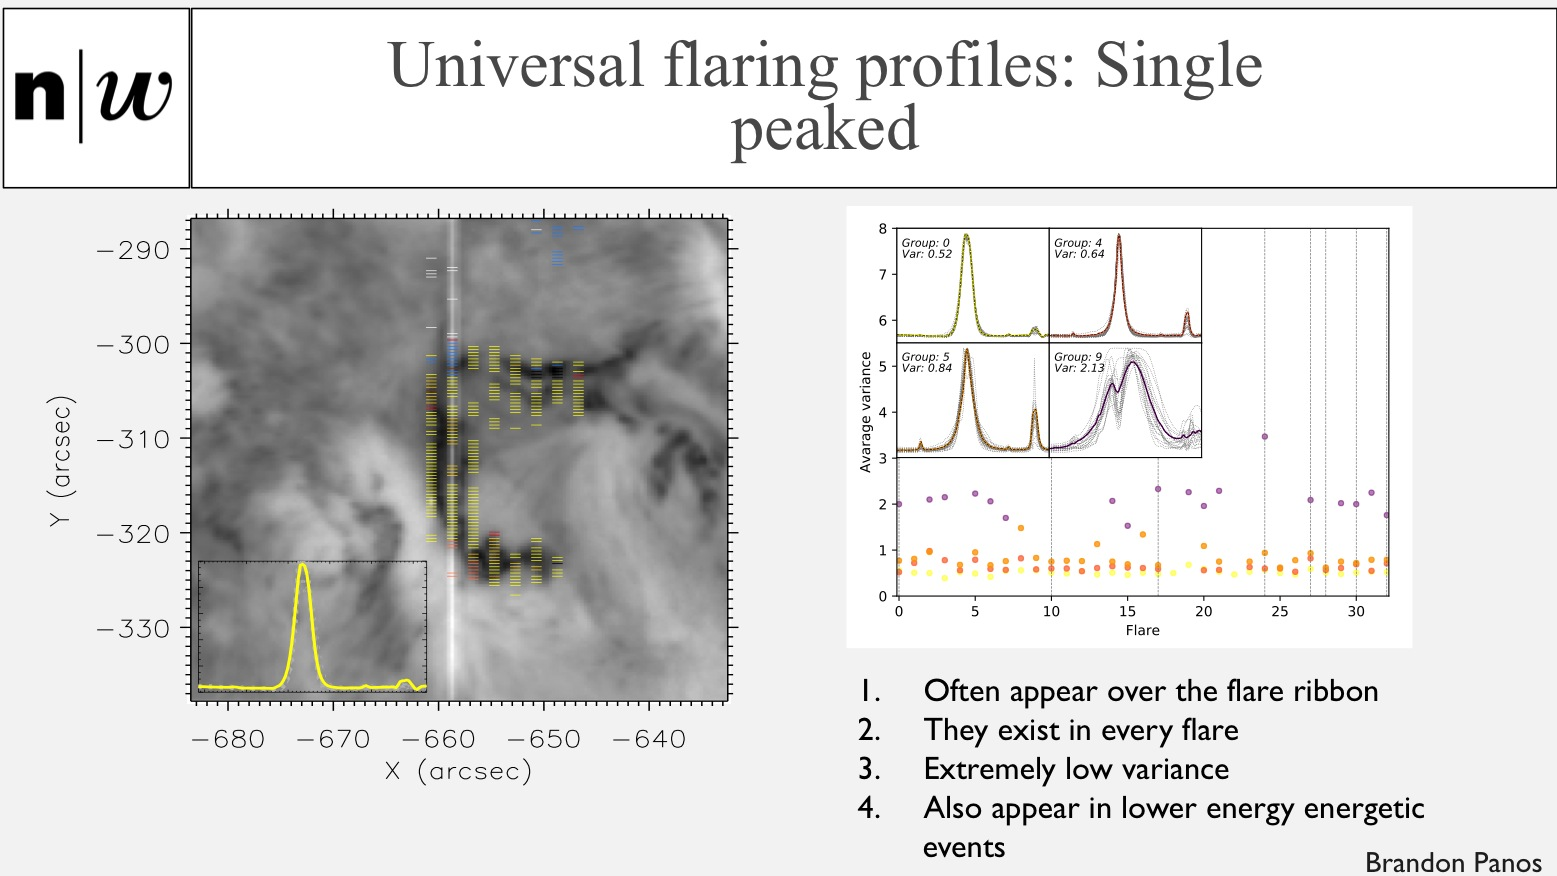 Universal flaring profiles: Single peaked